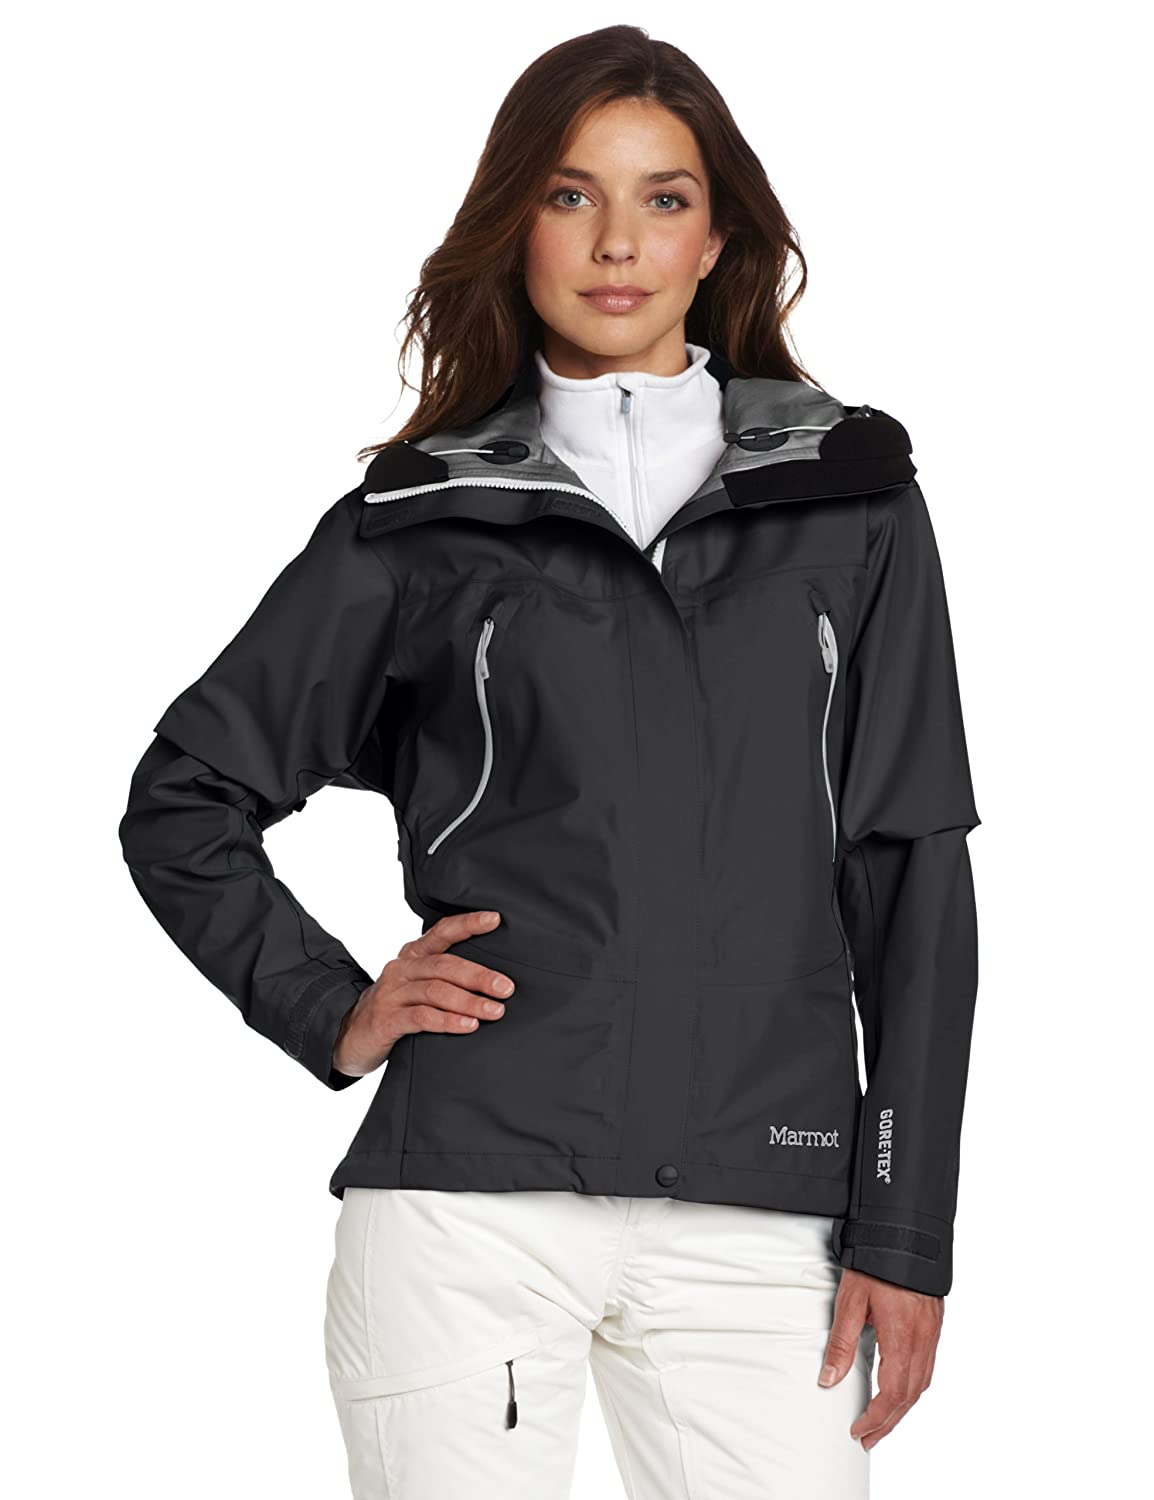 Marmot Damen 3-Lagen GoreTex Performance Shell Wm's Spire Jacket